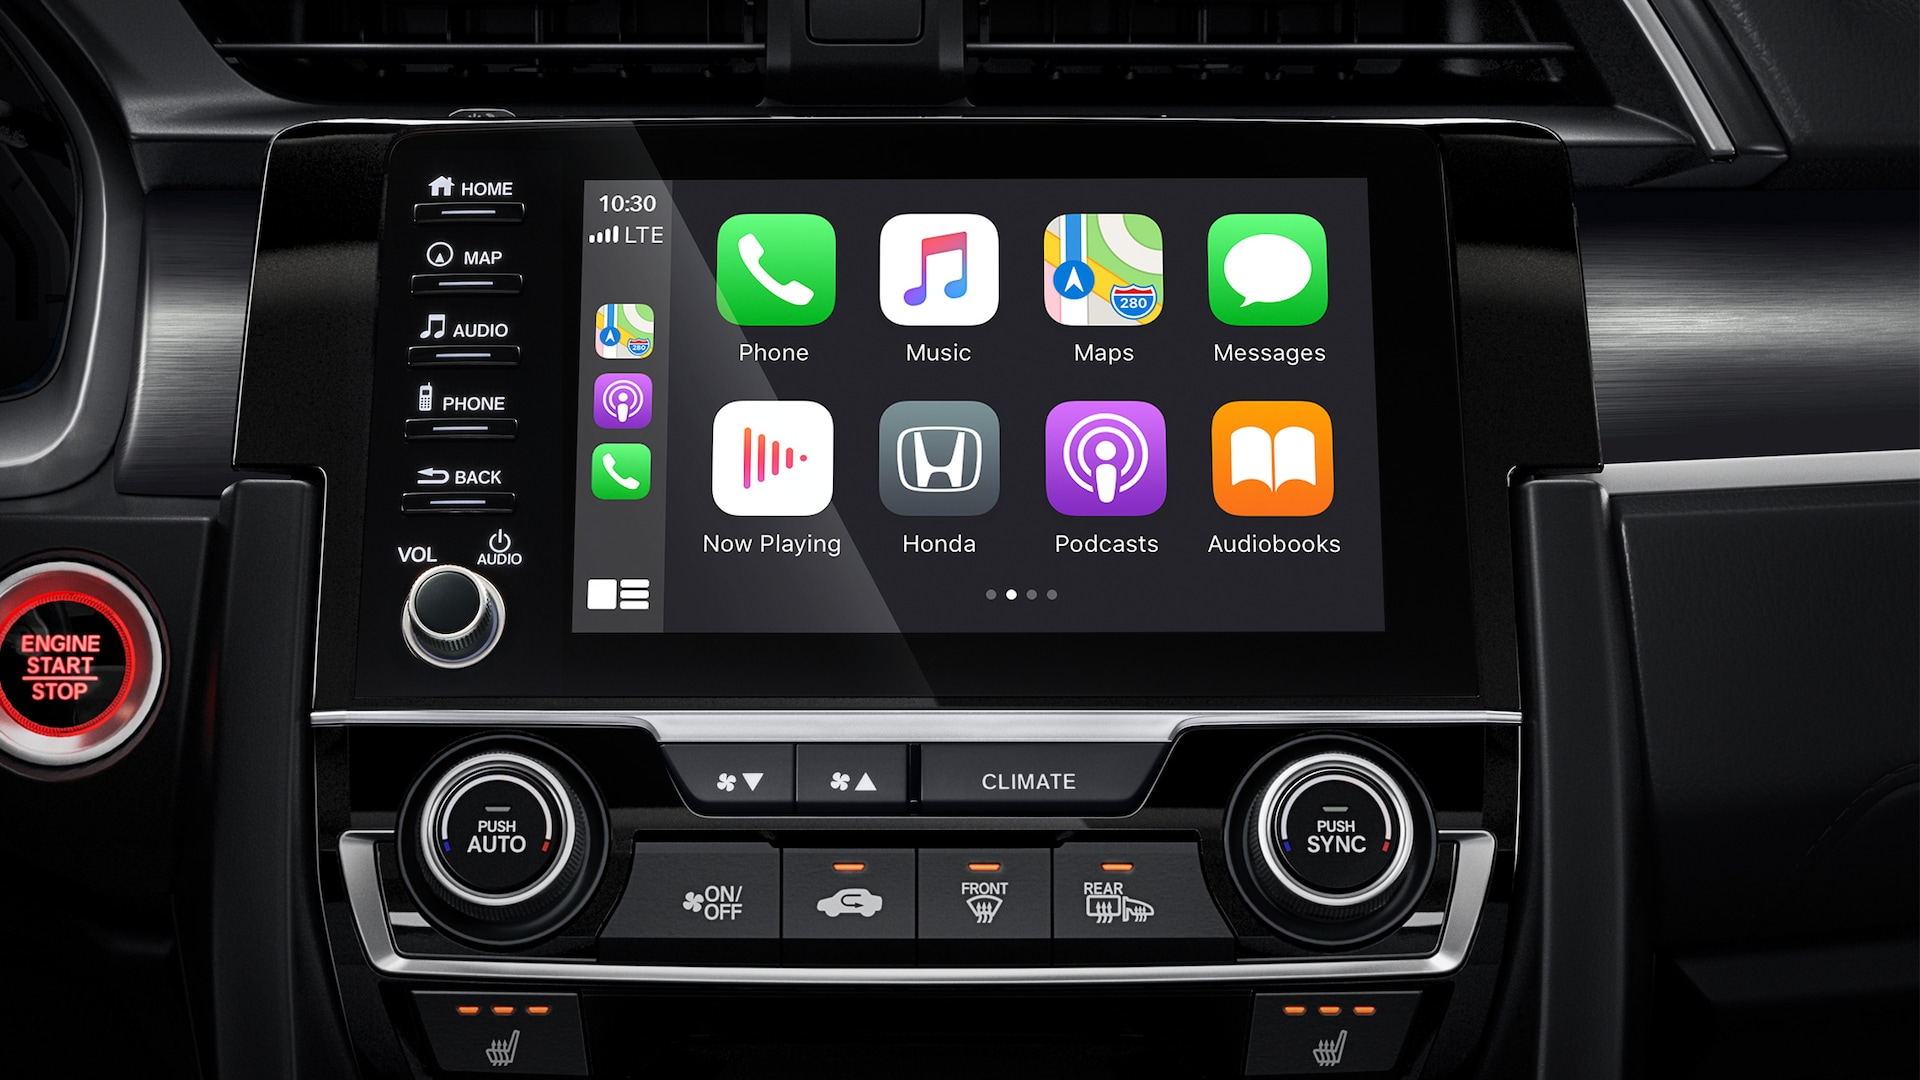 Detalle de la integración con Apple CarPlay® en el sistema de audio en pantalla táctil del Honda Civic Coupé 2020.